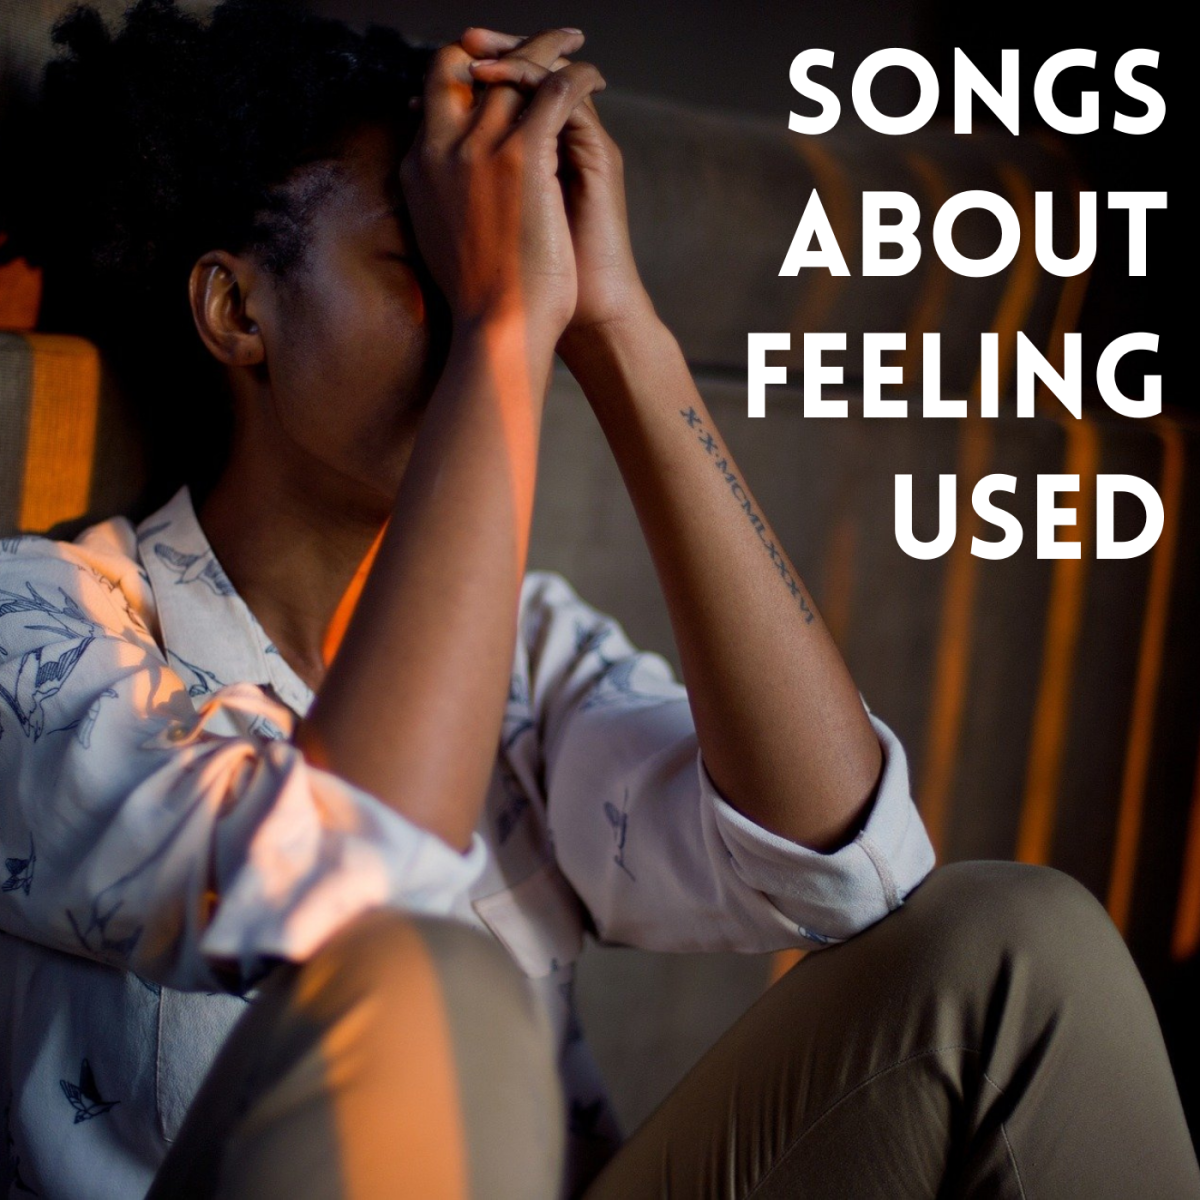 Feeling used, exploited, taken advantage of by a lover? As you decide what to do about it, make a playlist of pop, rock, country, and R&B songs about feeling manipulated in relationships.